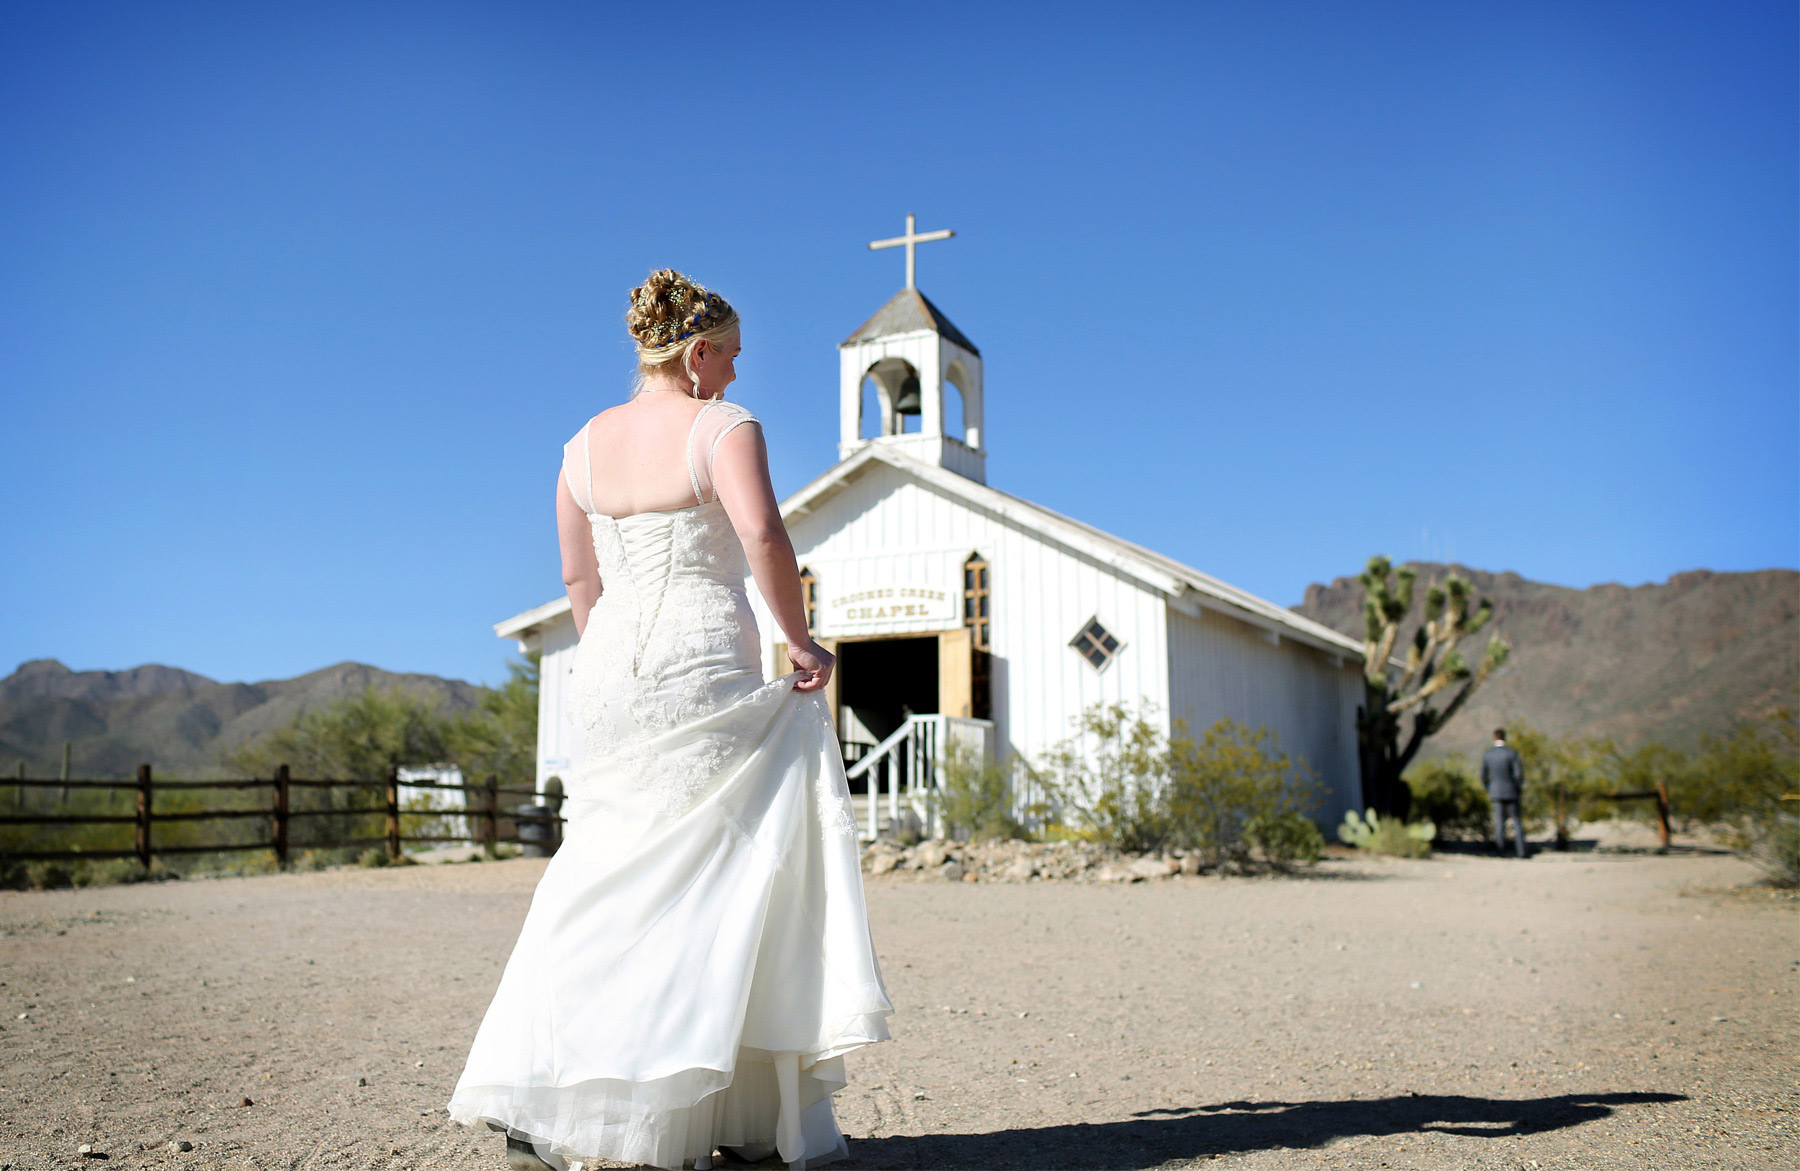 01-Tuscan-Arizona-Wedding-Photography-by-Vick-Photography-Destination-Wedding-Desert-Old-Tucson-Studios-First-Look-Elsa-and-Arthur.jpg